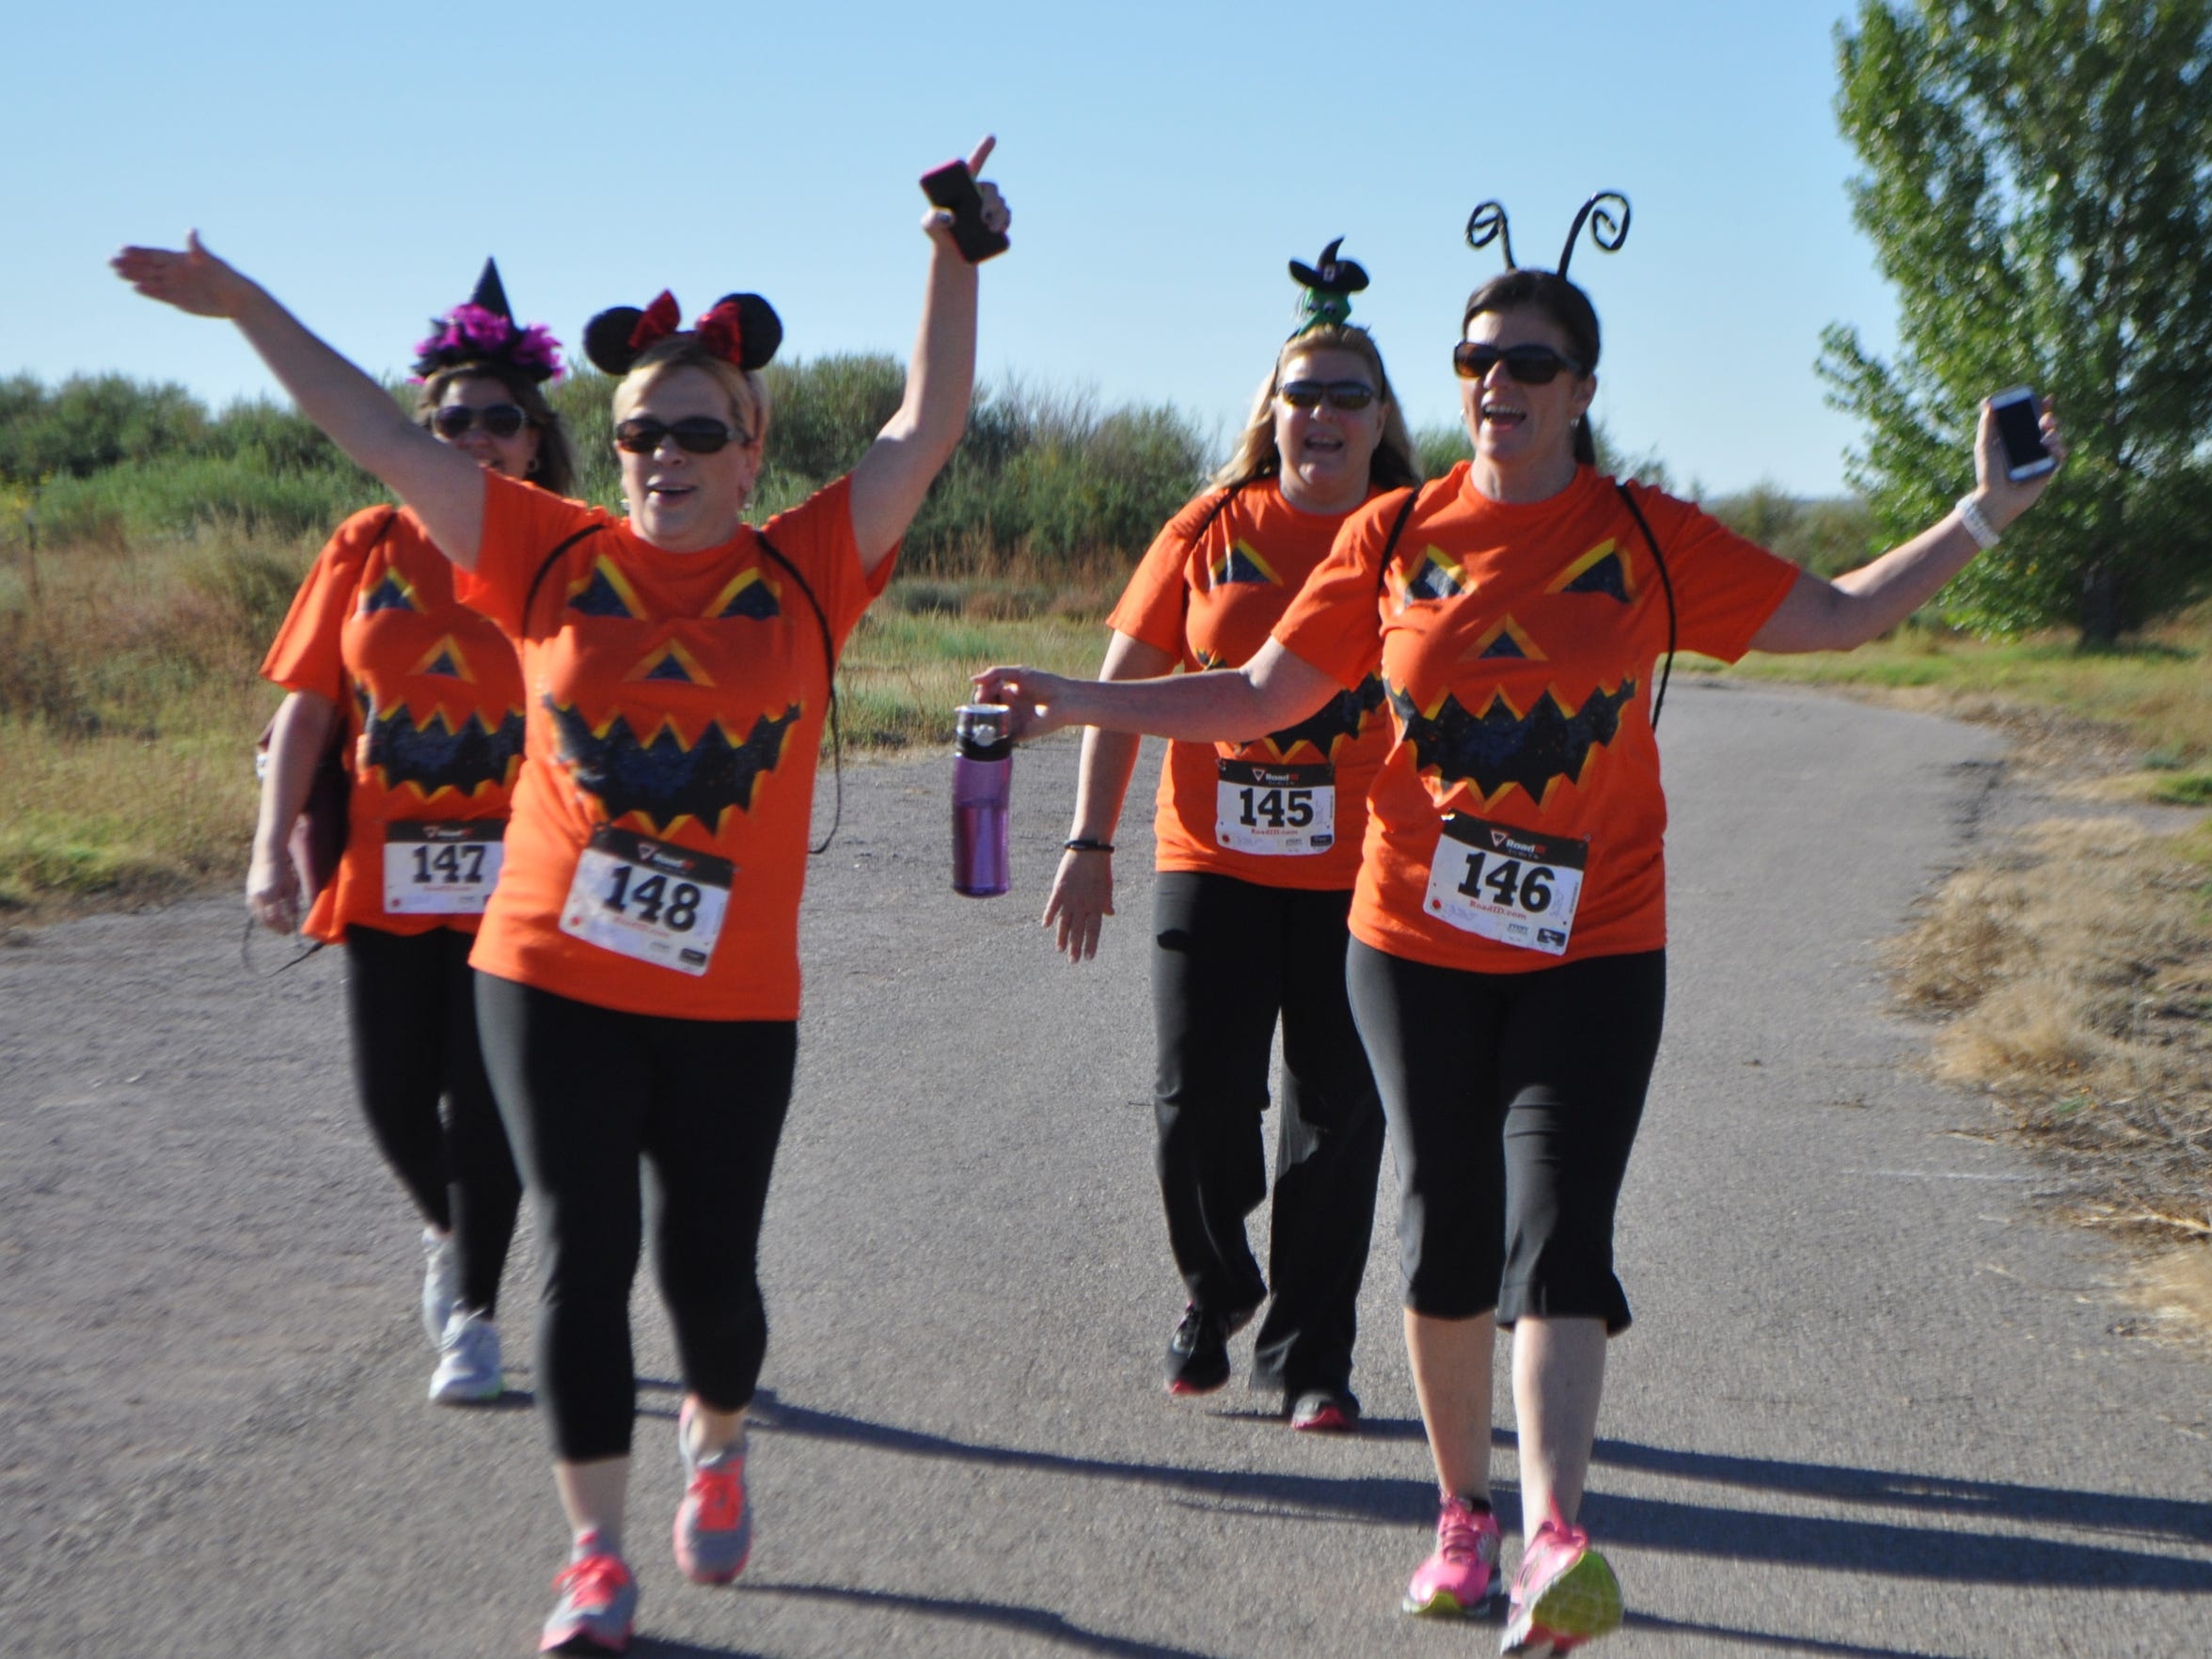 Participants sport their Halloween spirit as they walk in the 2014 Las Cruces Monster Run at La Llorona Park.